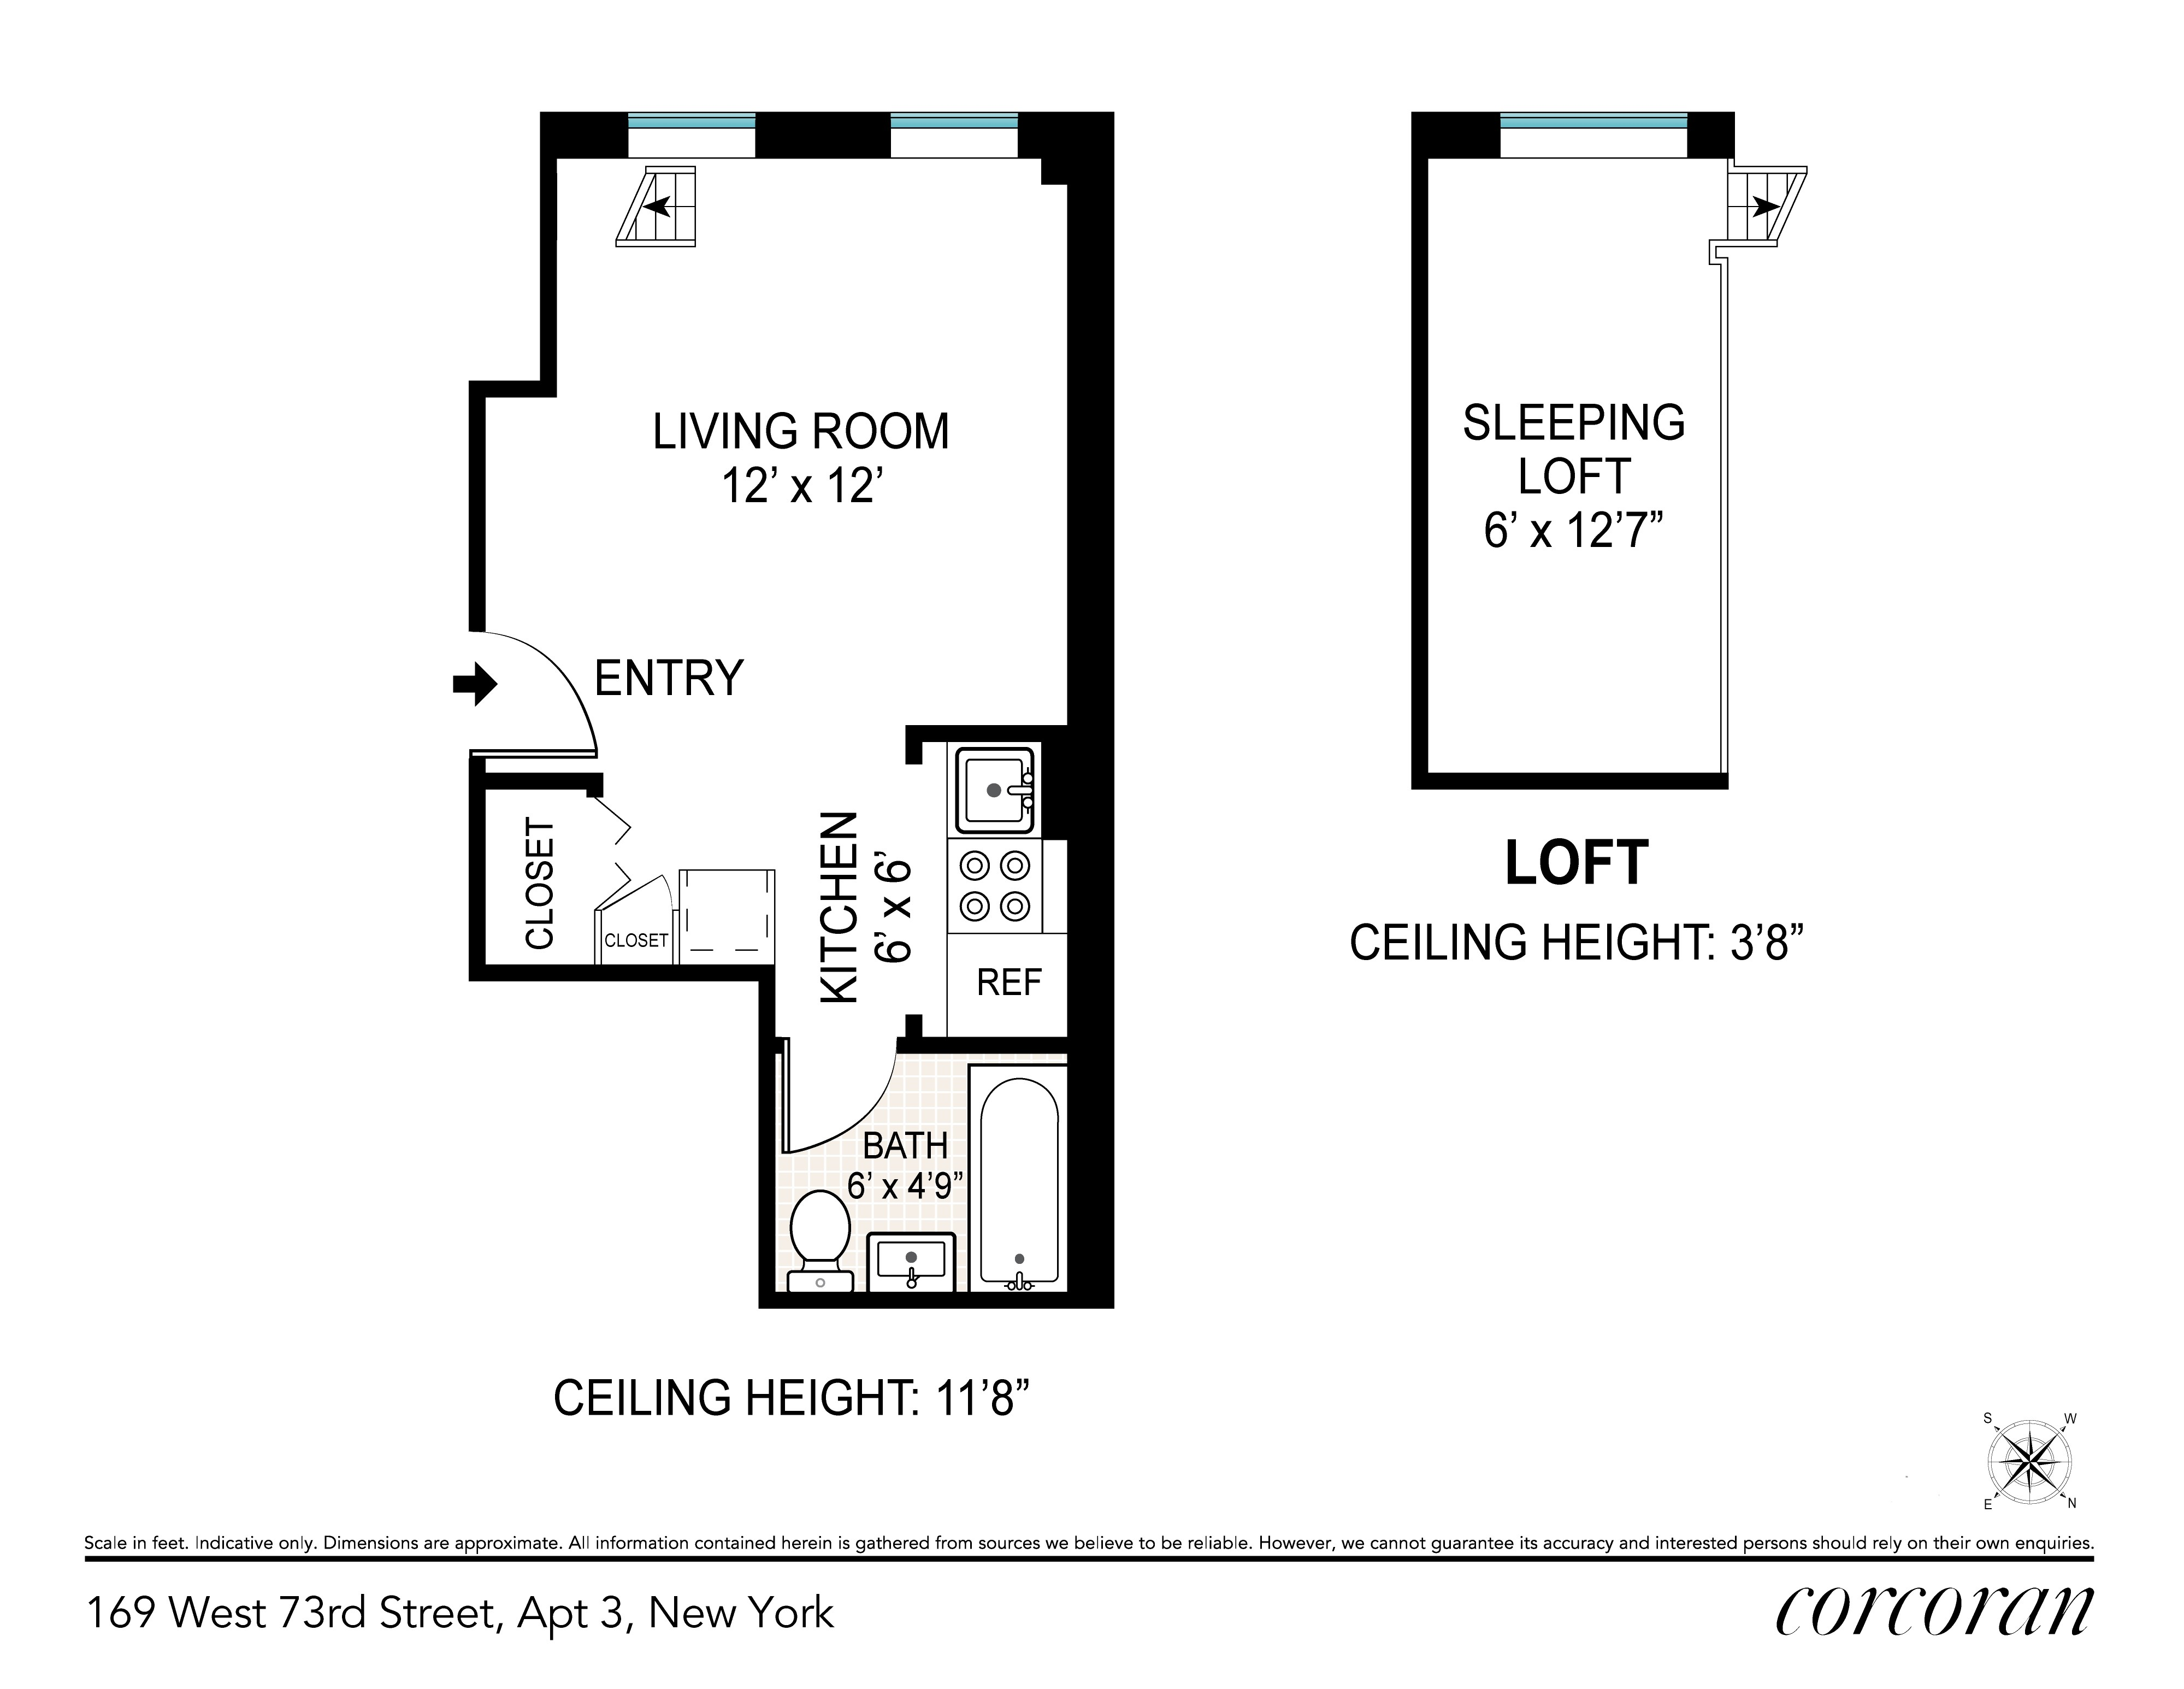 169 West 73rd Street Upper West Side New York NY 10023